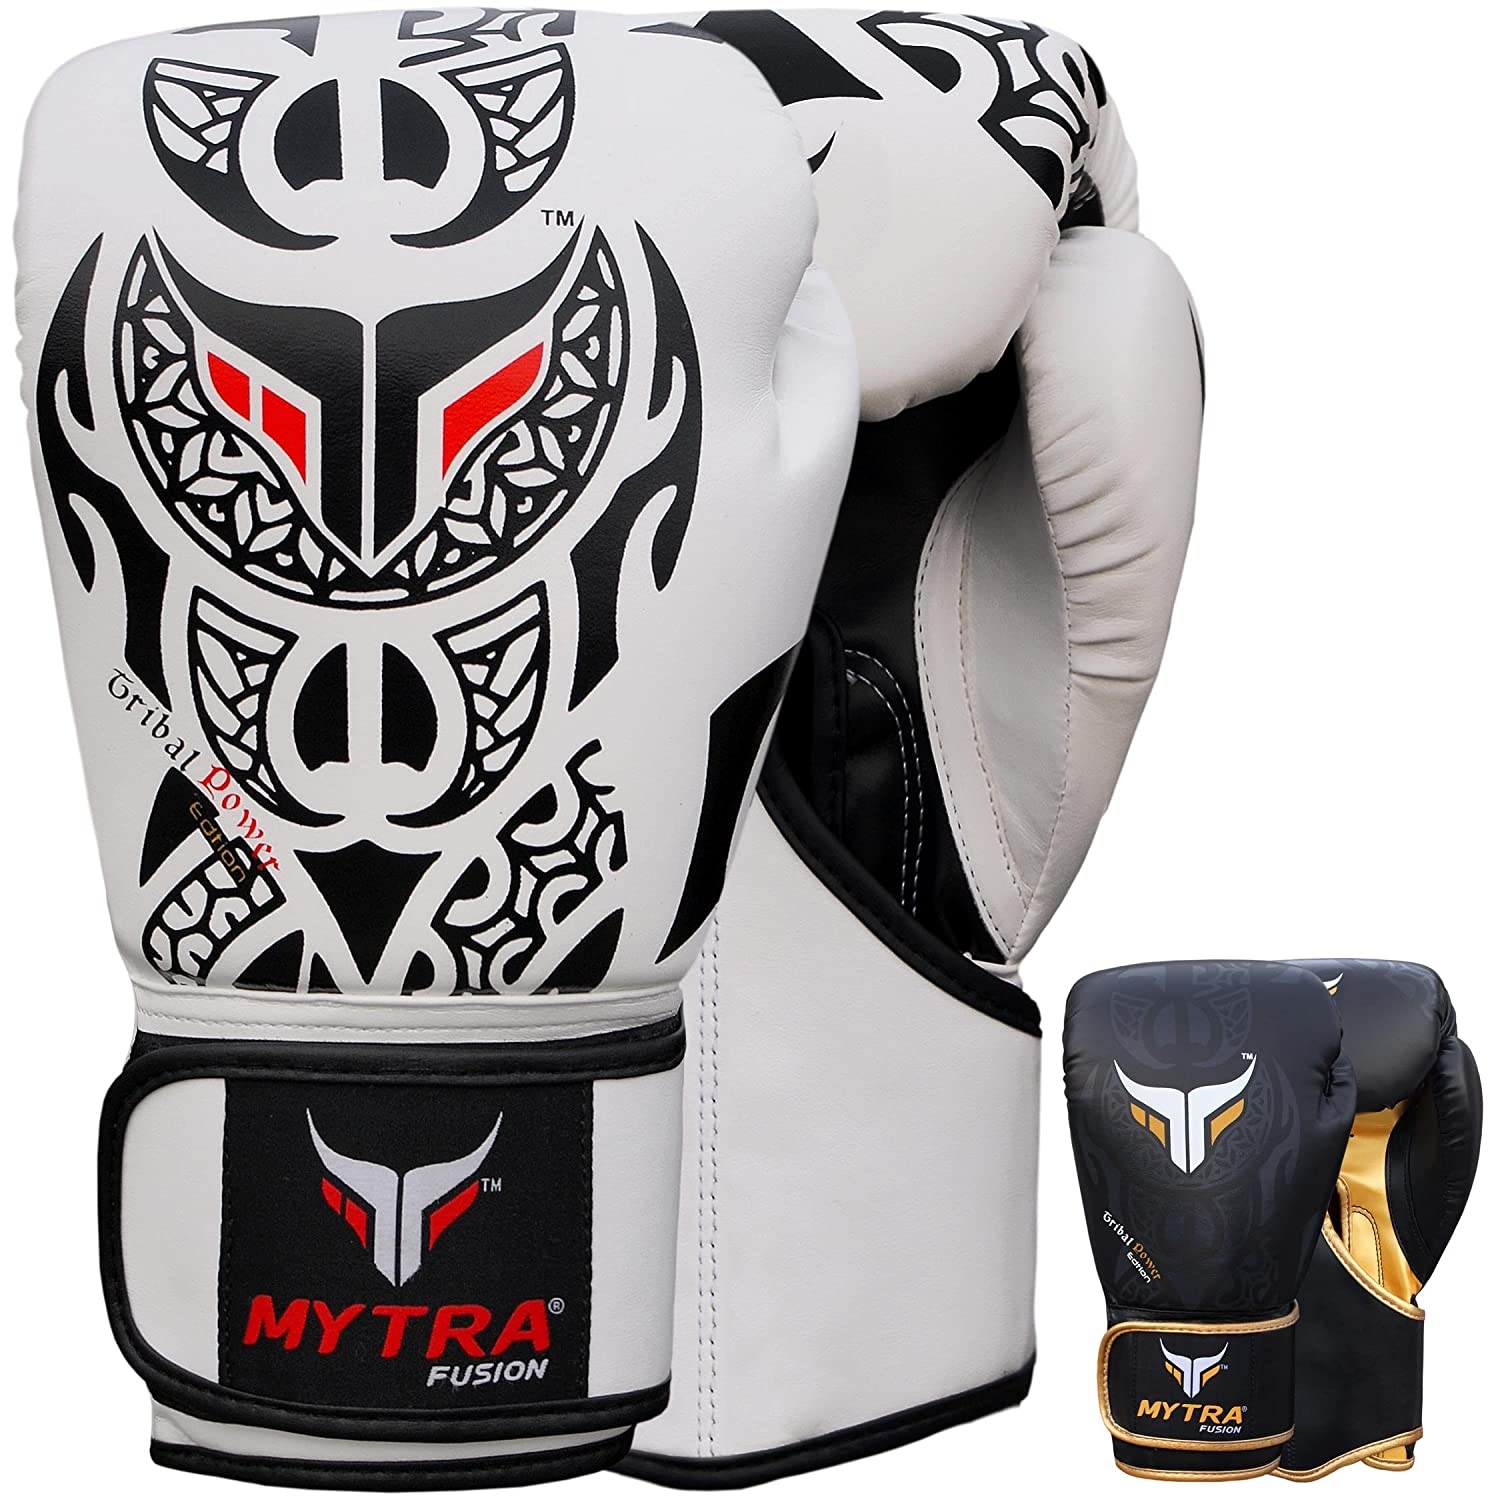 Mytra Fusion TribalボクシンググローブRealレザーボクシンググローブ10oz 12oz 14オンス16オンスのボクシンググローブTraining Punching Sparring Punching Bagボクシングバッグ手袋パンチバッグ ホワイトブラック 16-oz